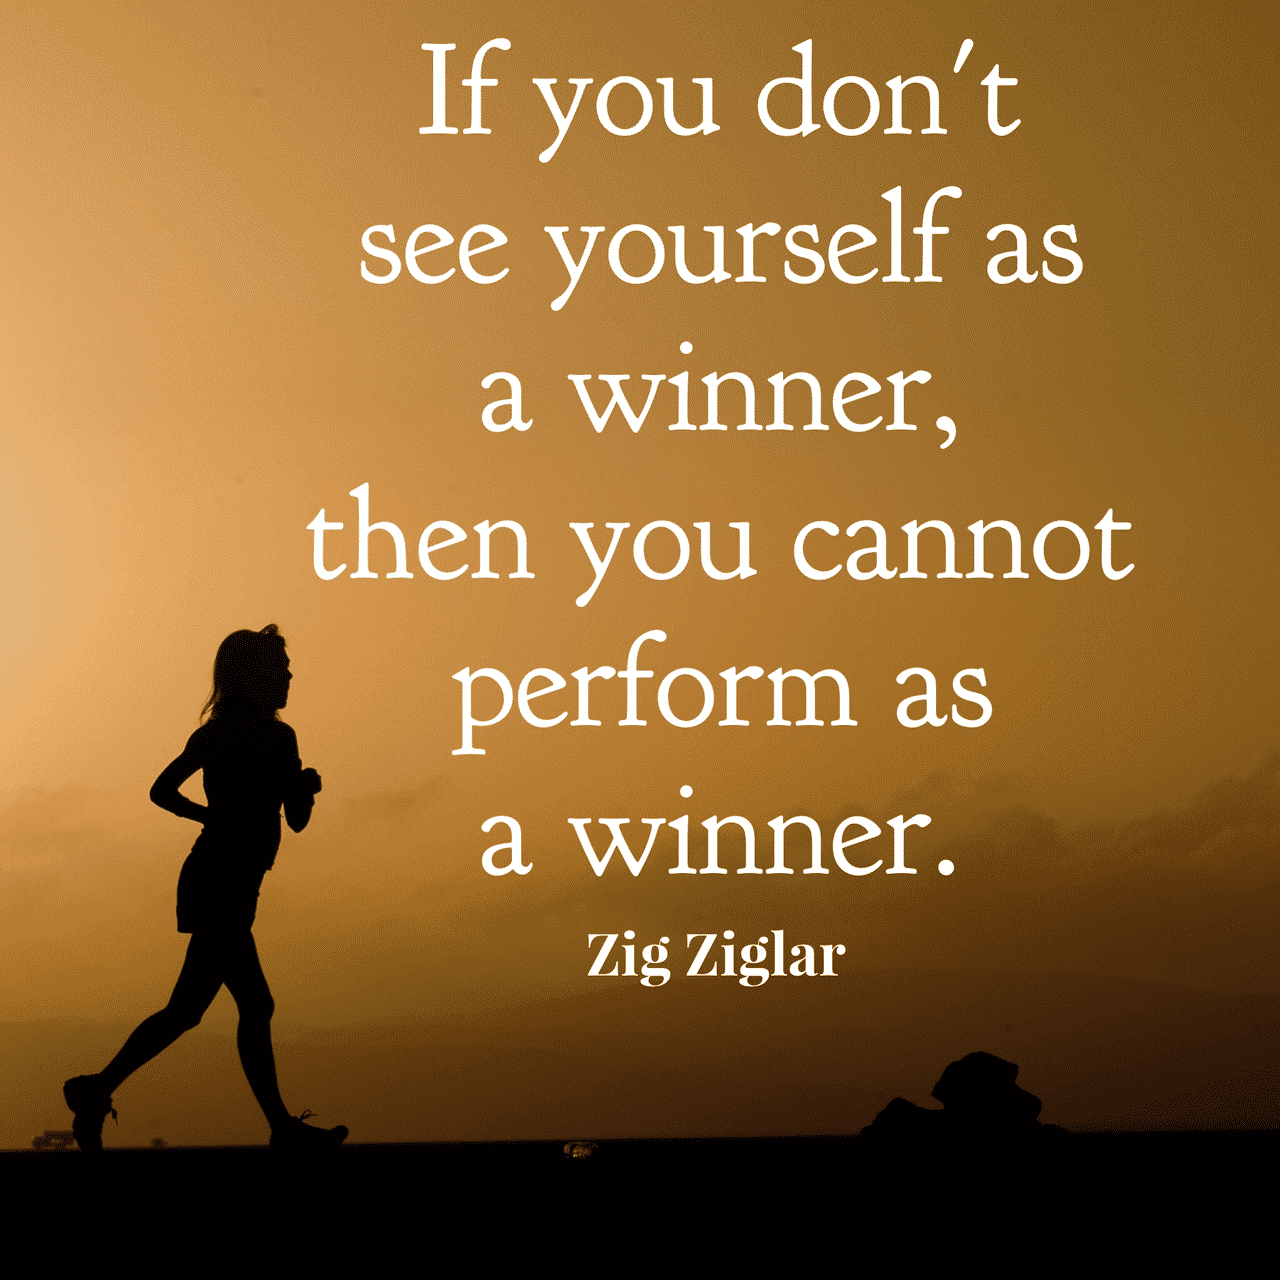 Quotes Zig Ziglar Fair 25 Motivational Zig Ziglar Quotes